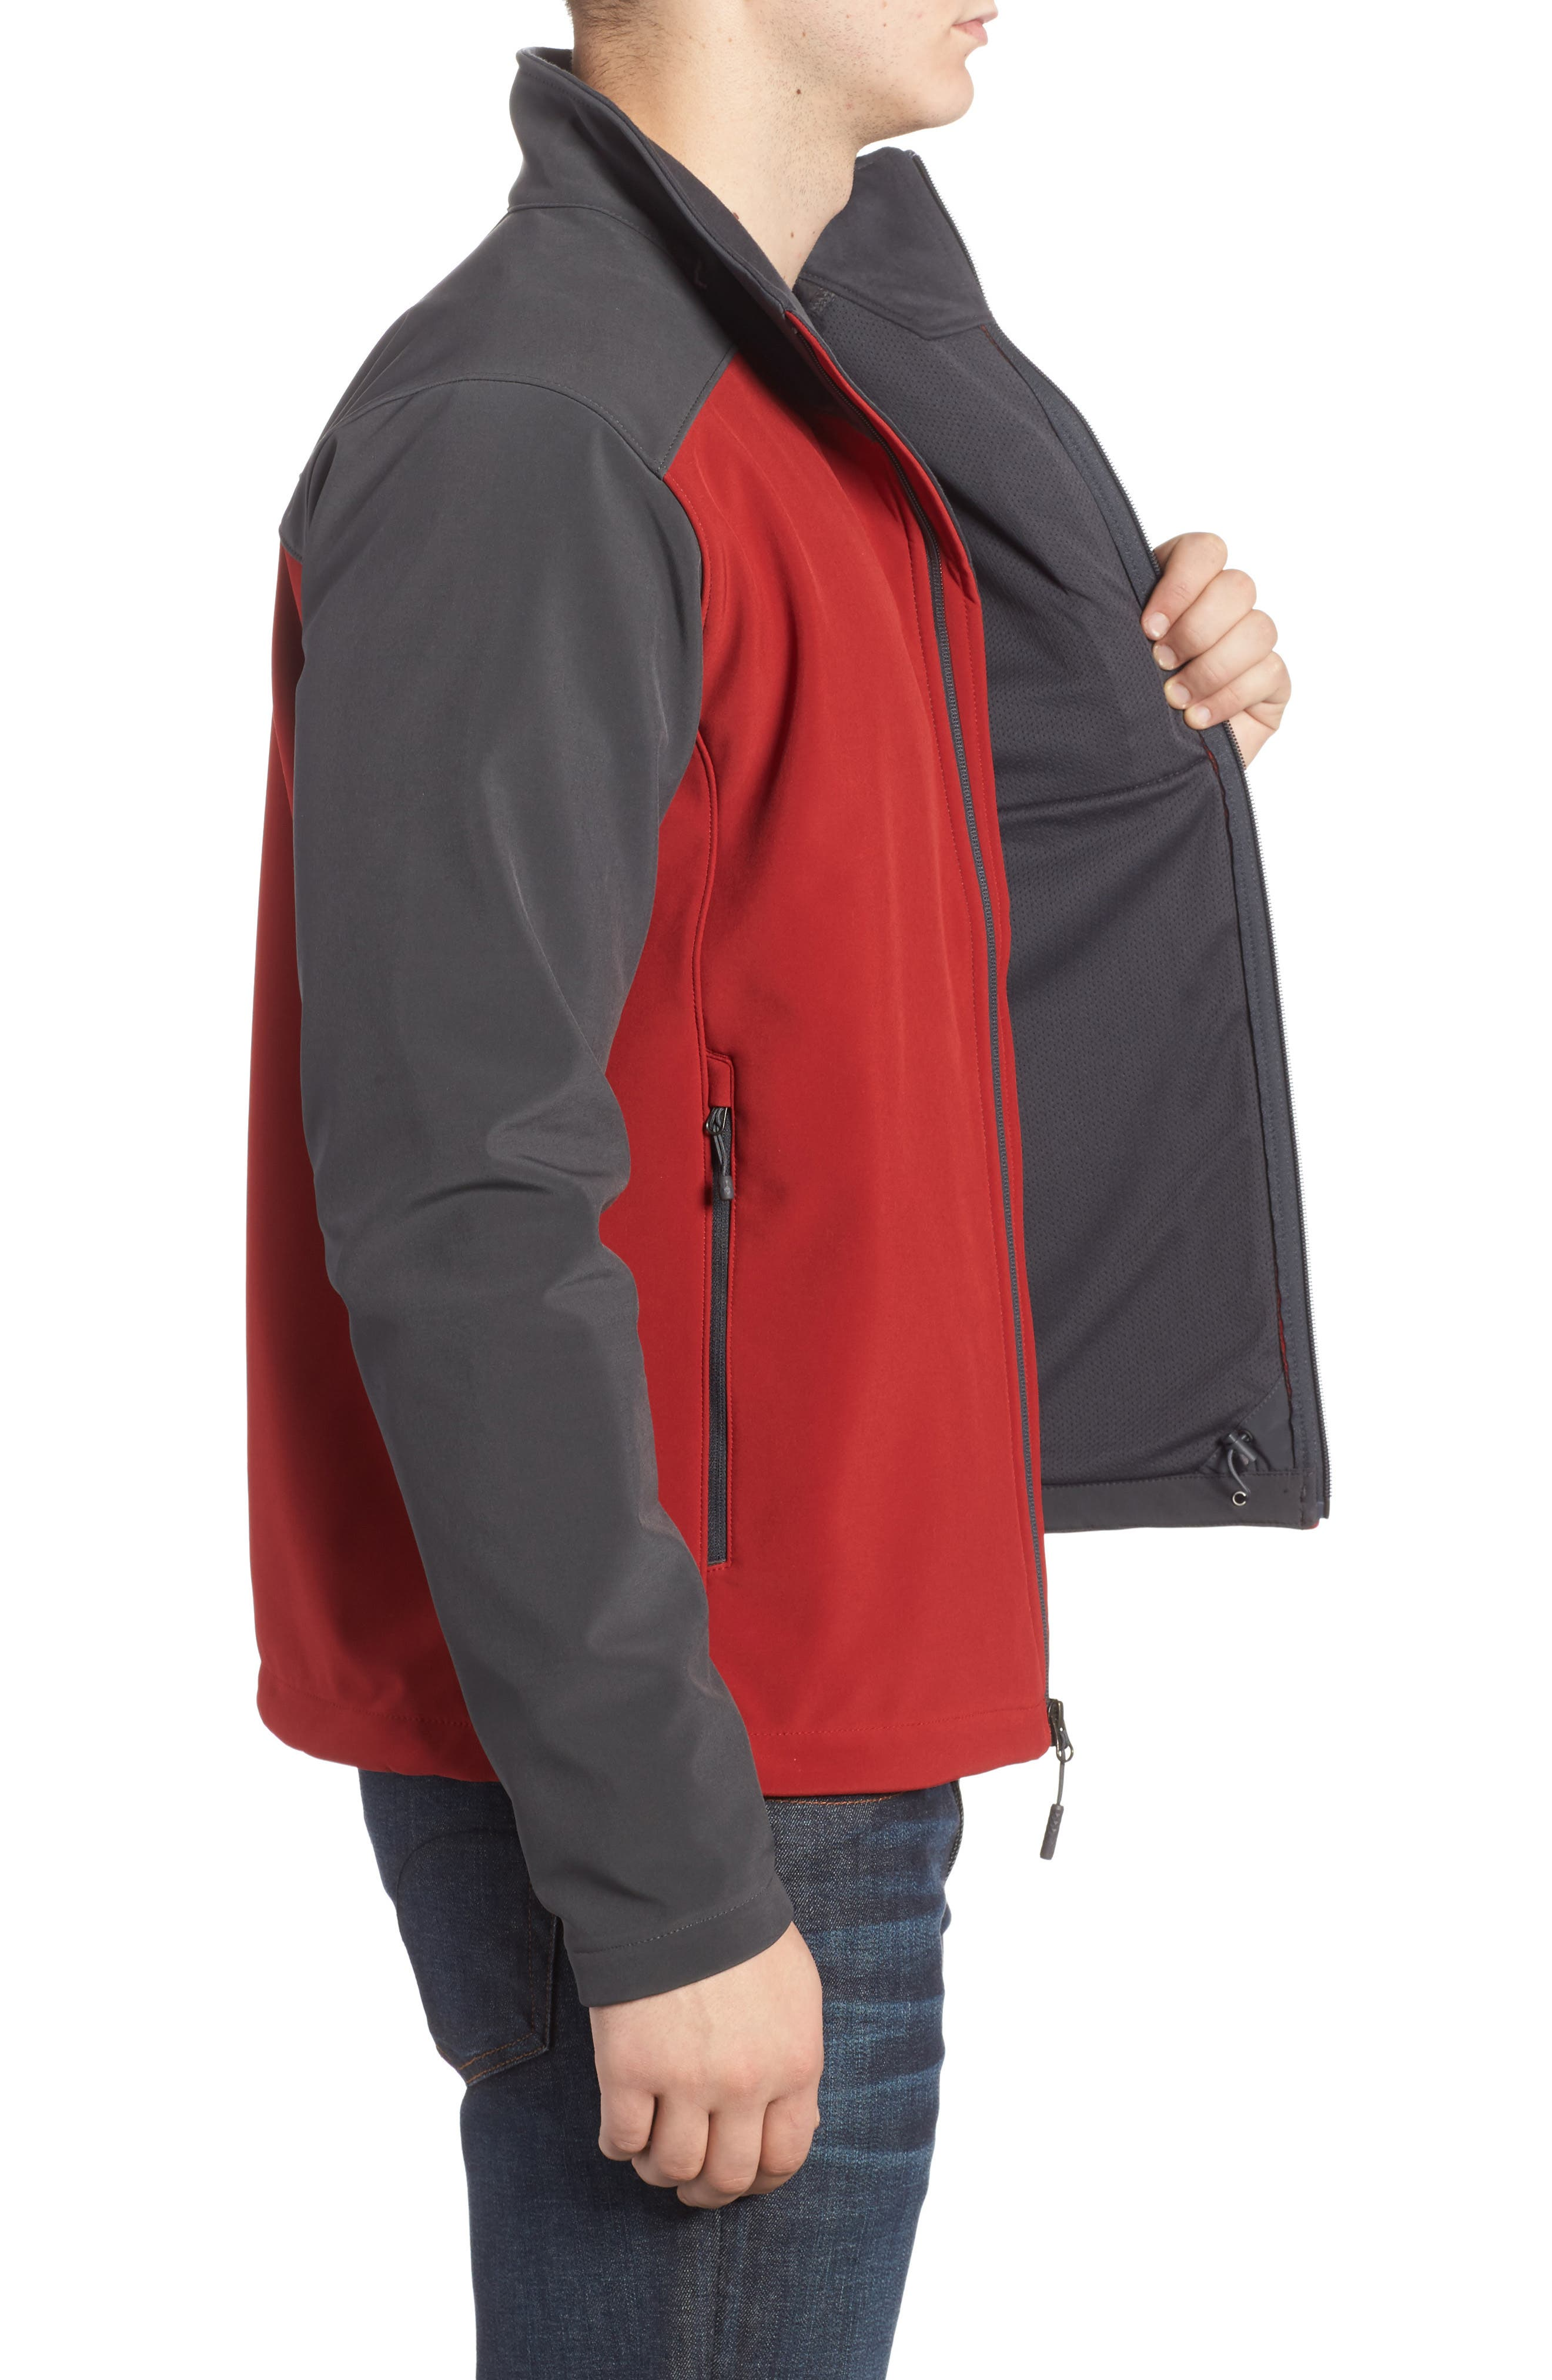 'Apex Bionic 2' Windproof & Water Resistant Soft Shell Jacket,                             Alternate thumbnail 3, color,                             Cardinal Red/ Asphalt Grey